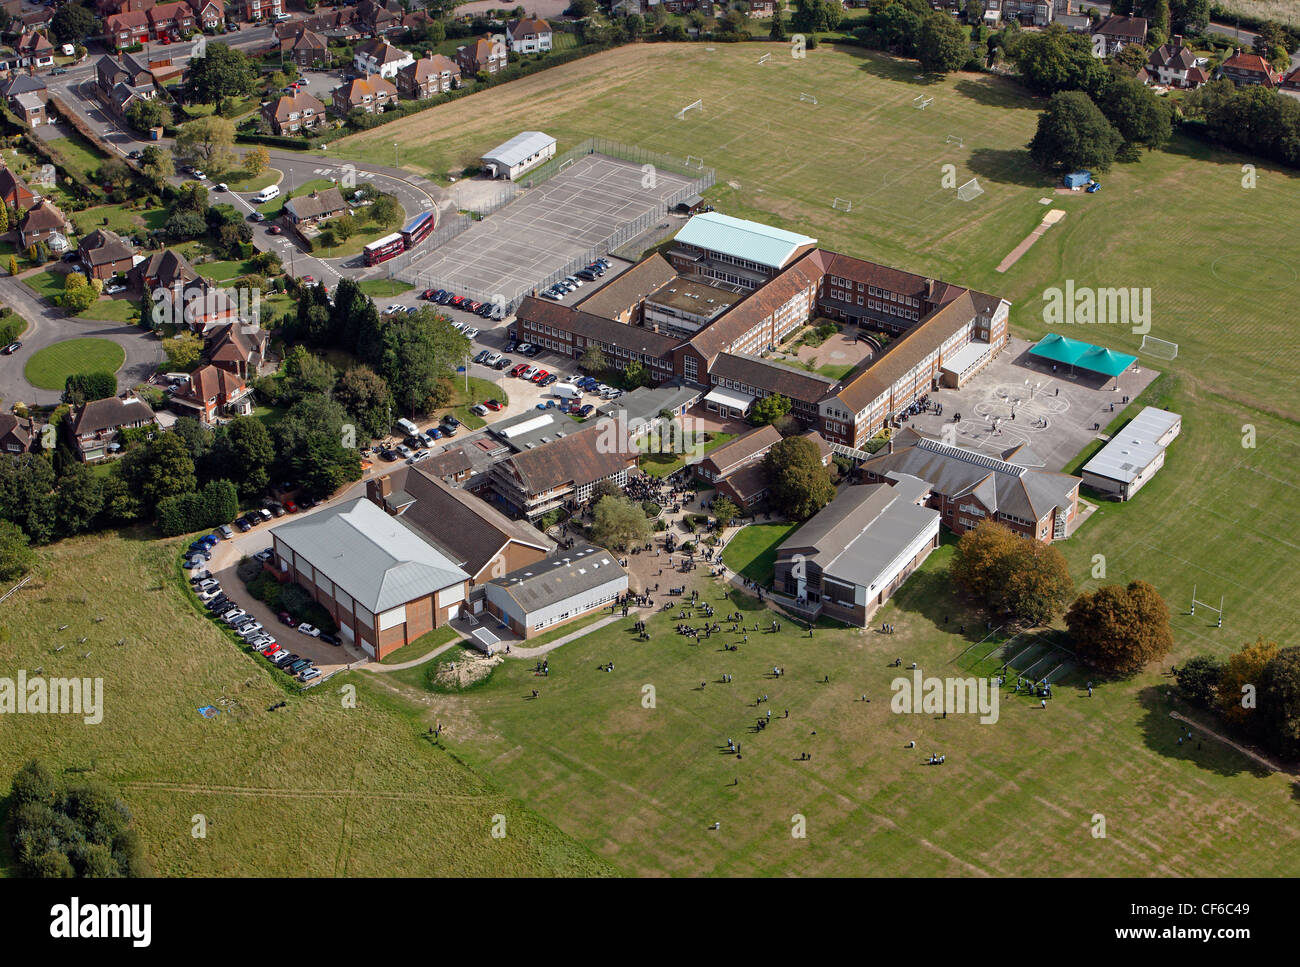 Aerial view of a UK secondary school - Stock Image